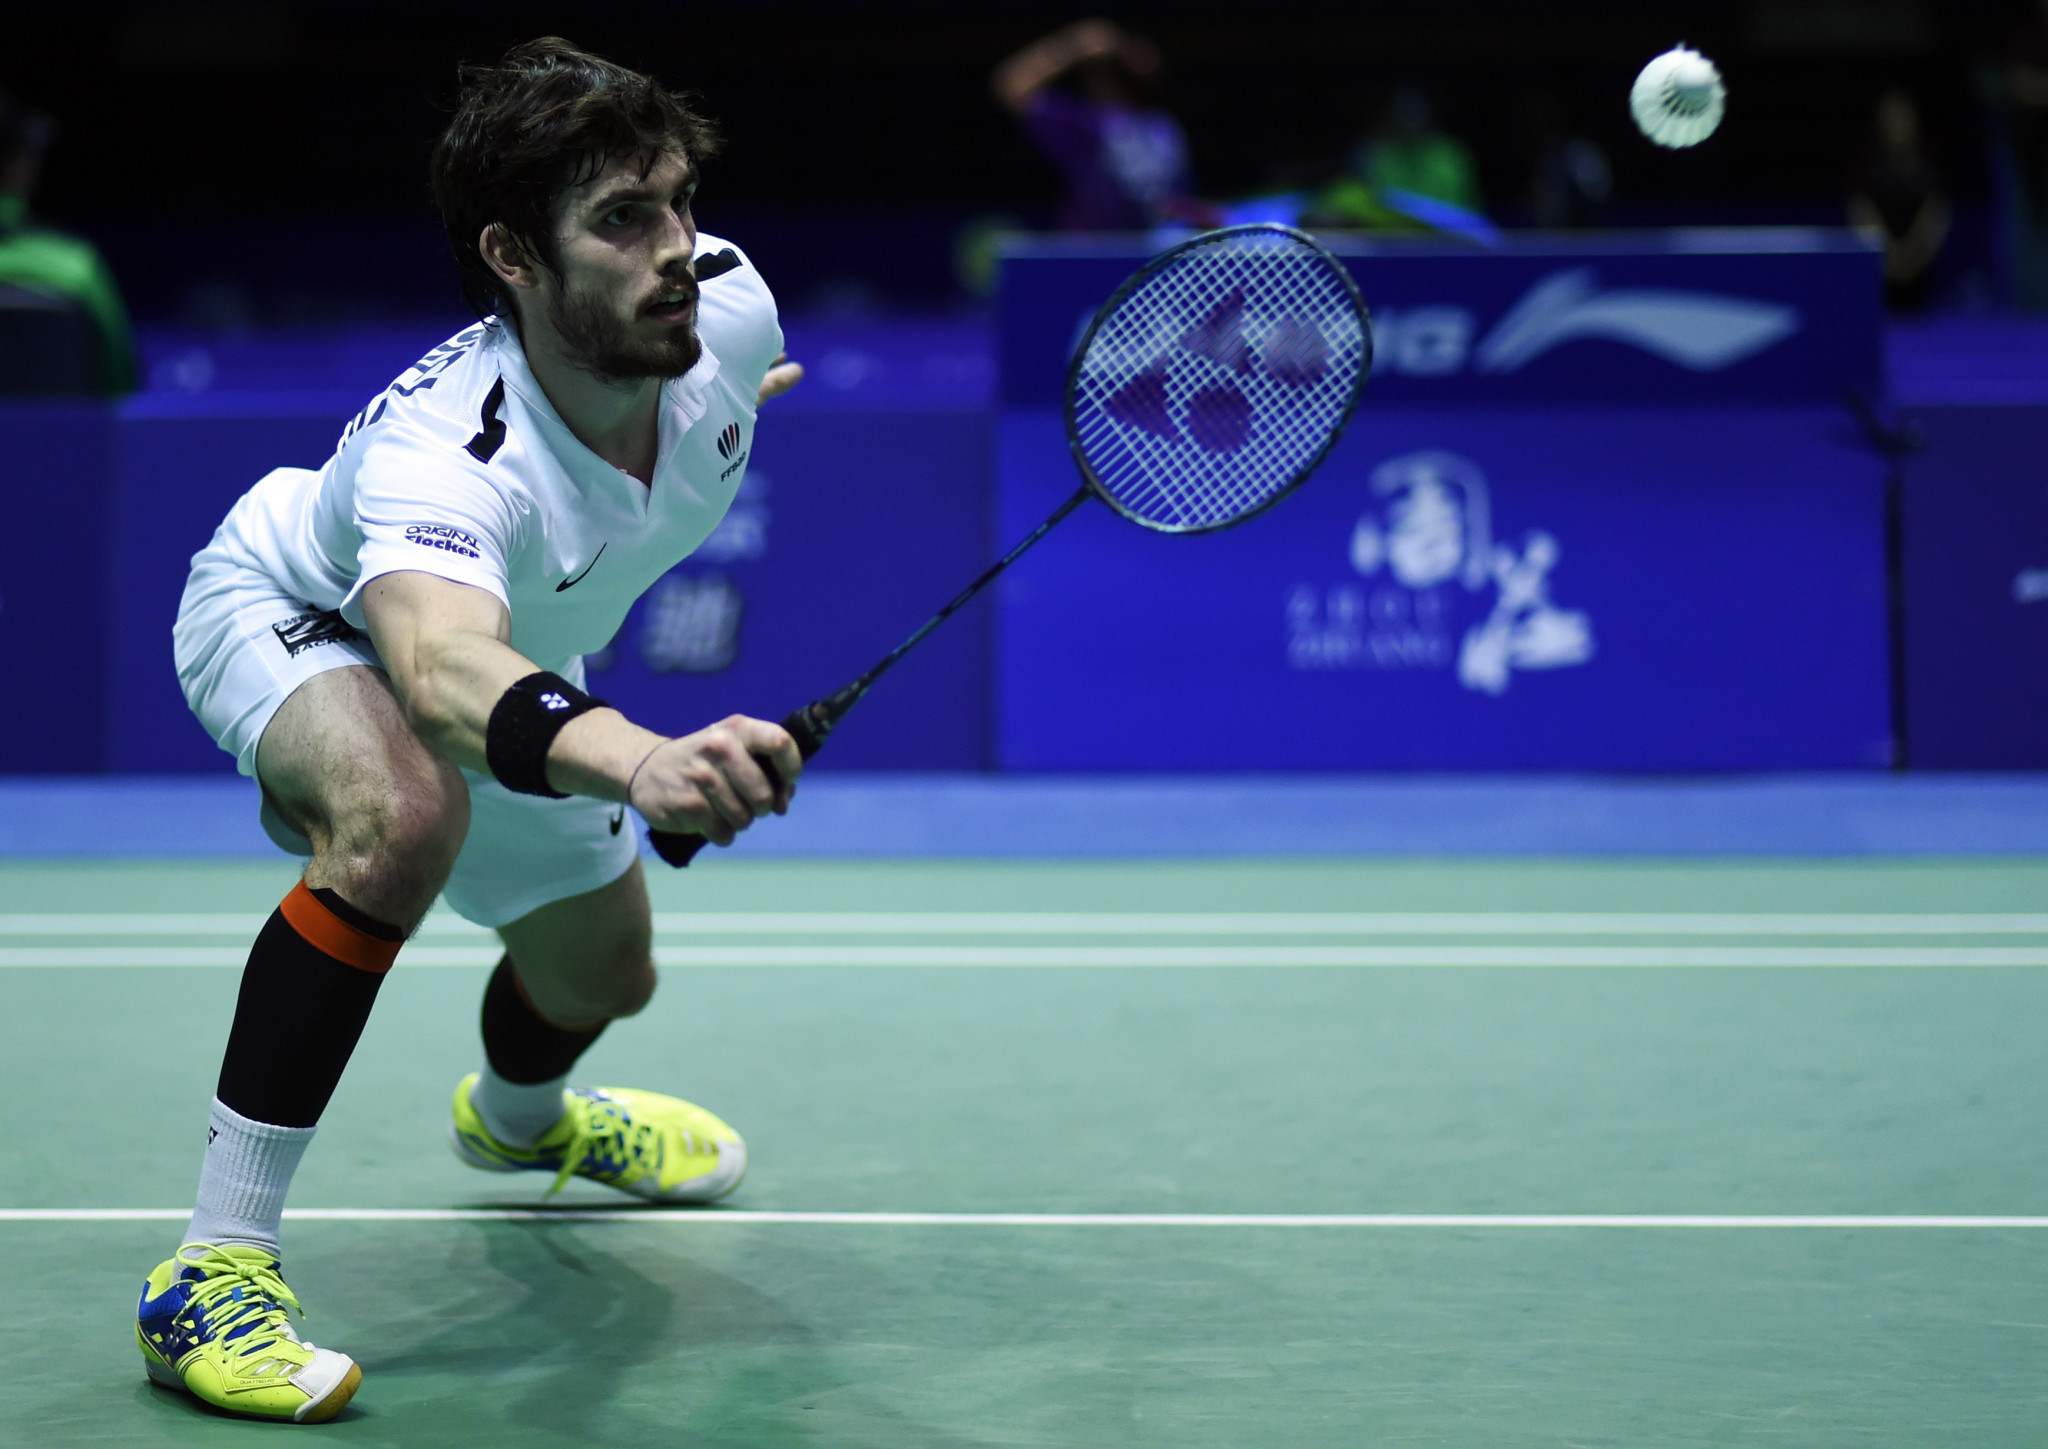 Home pair come through men's singles qualifying at BWF French Open